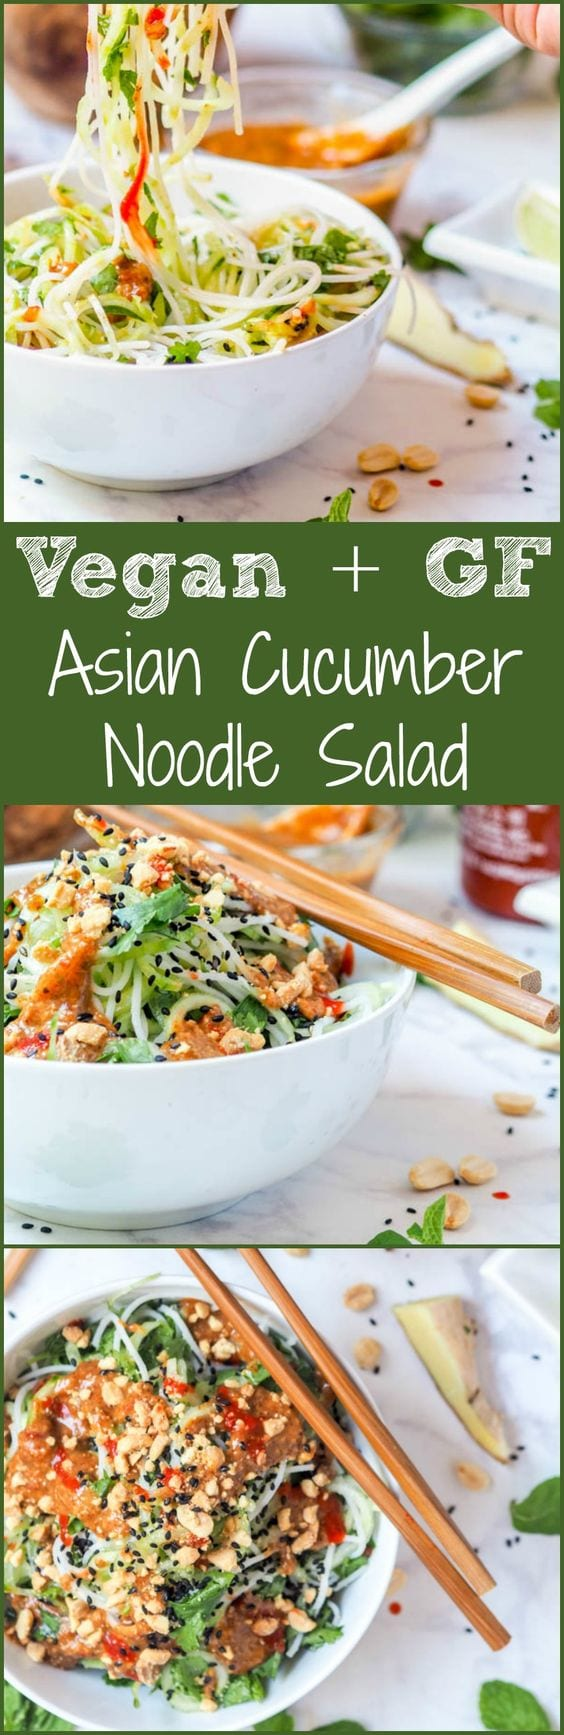 Vegan + GF Asian noodle salad mad with cucumbers, rice noodles, mint + cilantro and topped with a creamy almond ginger dressing. Ready in 30 mins. Light yet filling enough for a full meal. #vegan #noodle #healthy #asian